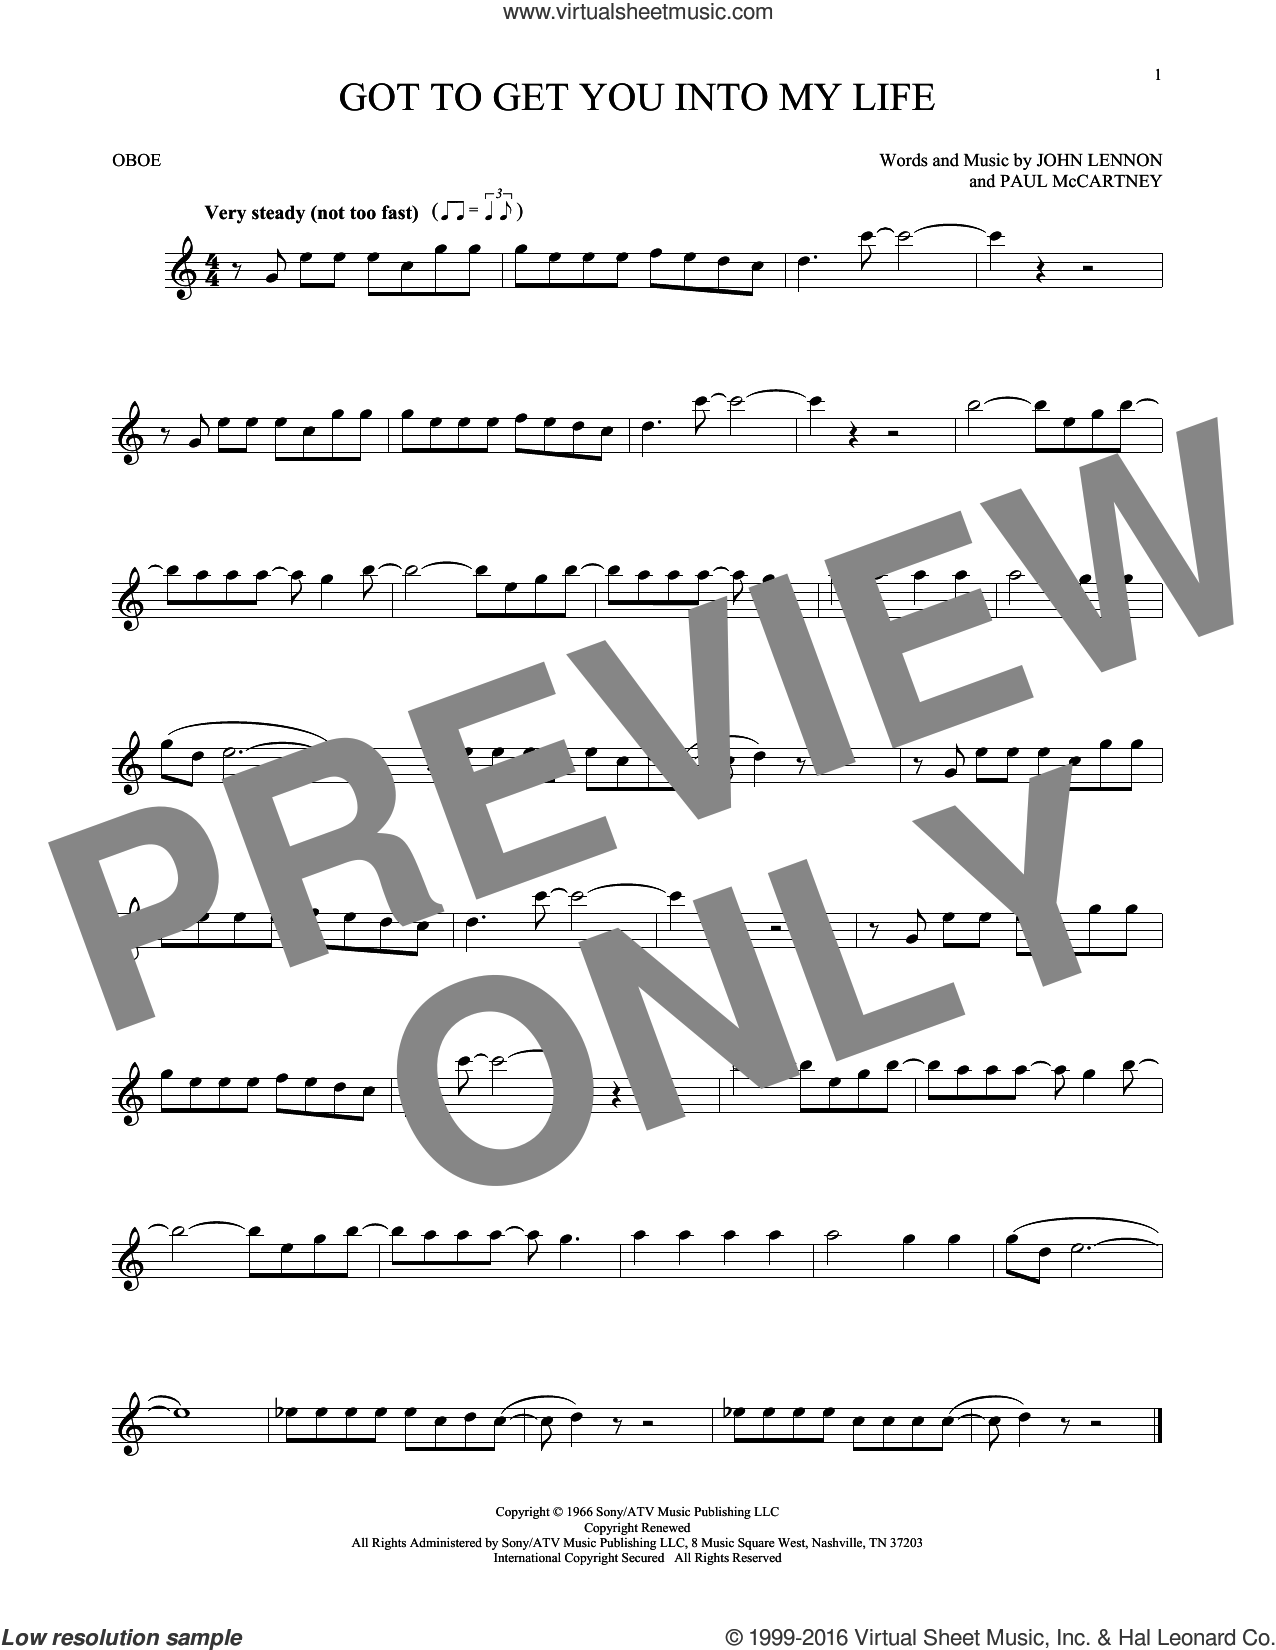 Got To Get You Into My Life sheet music for oboe solo by Paul McCartney, The Beatles and John Lennon. Score Image Preview.